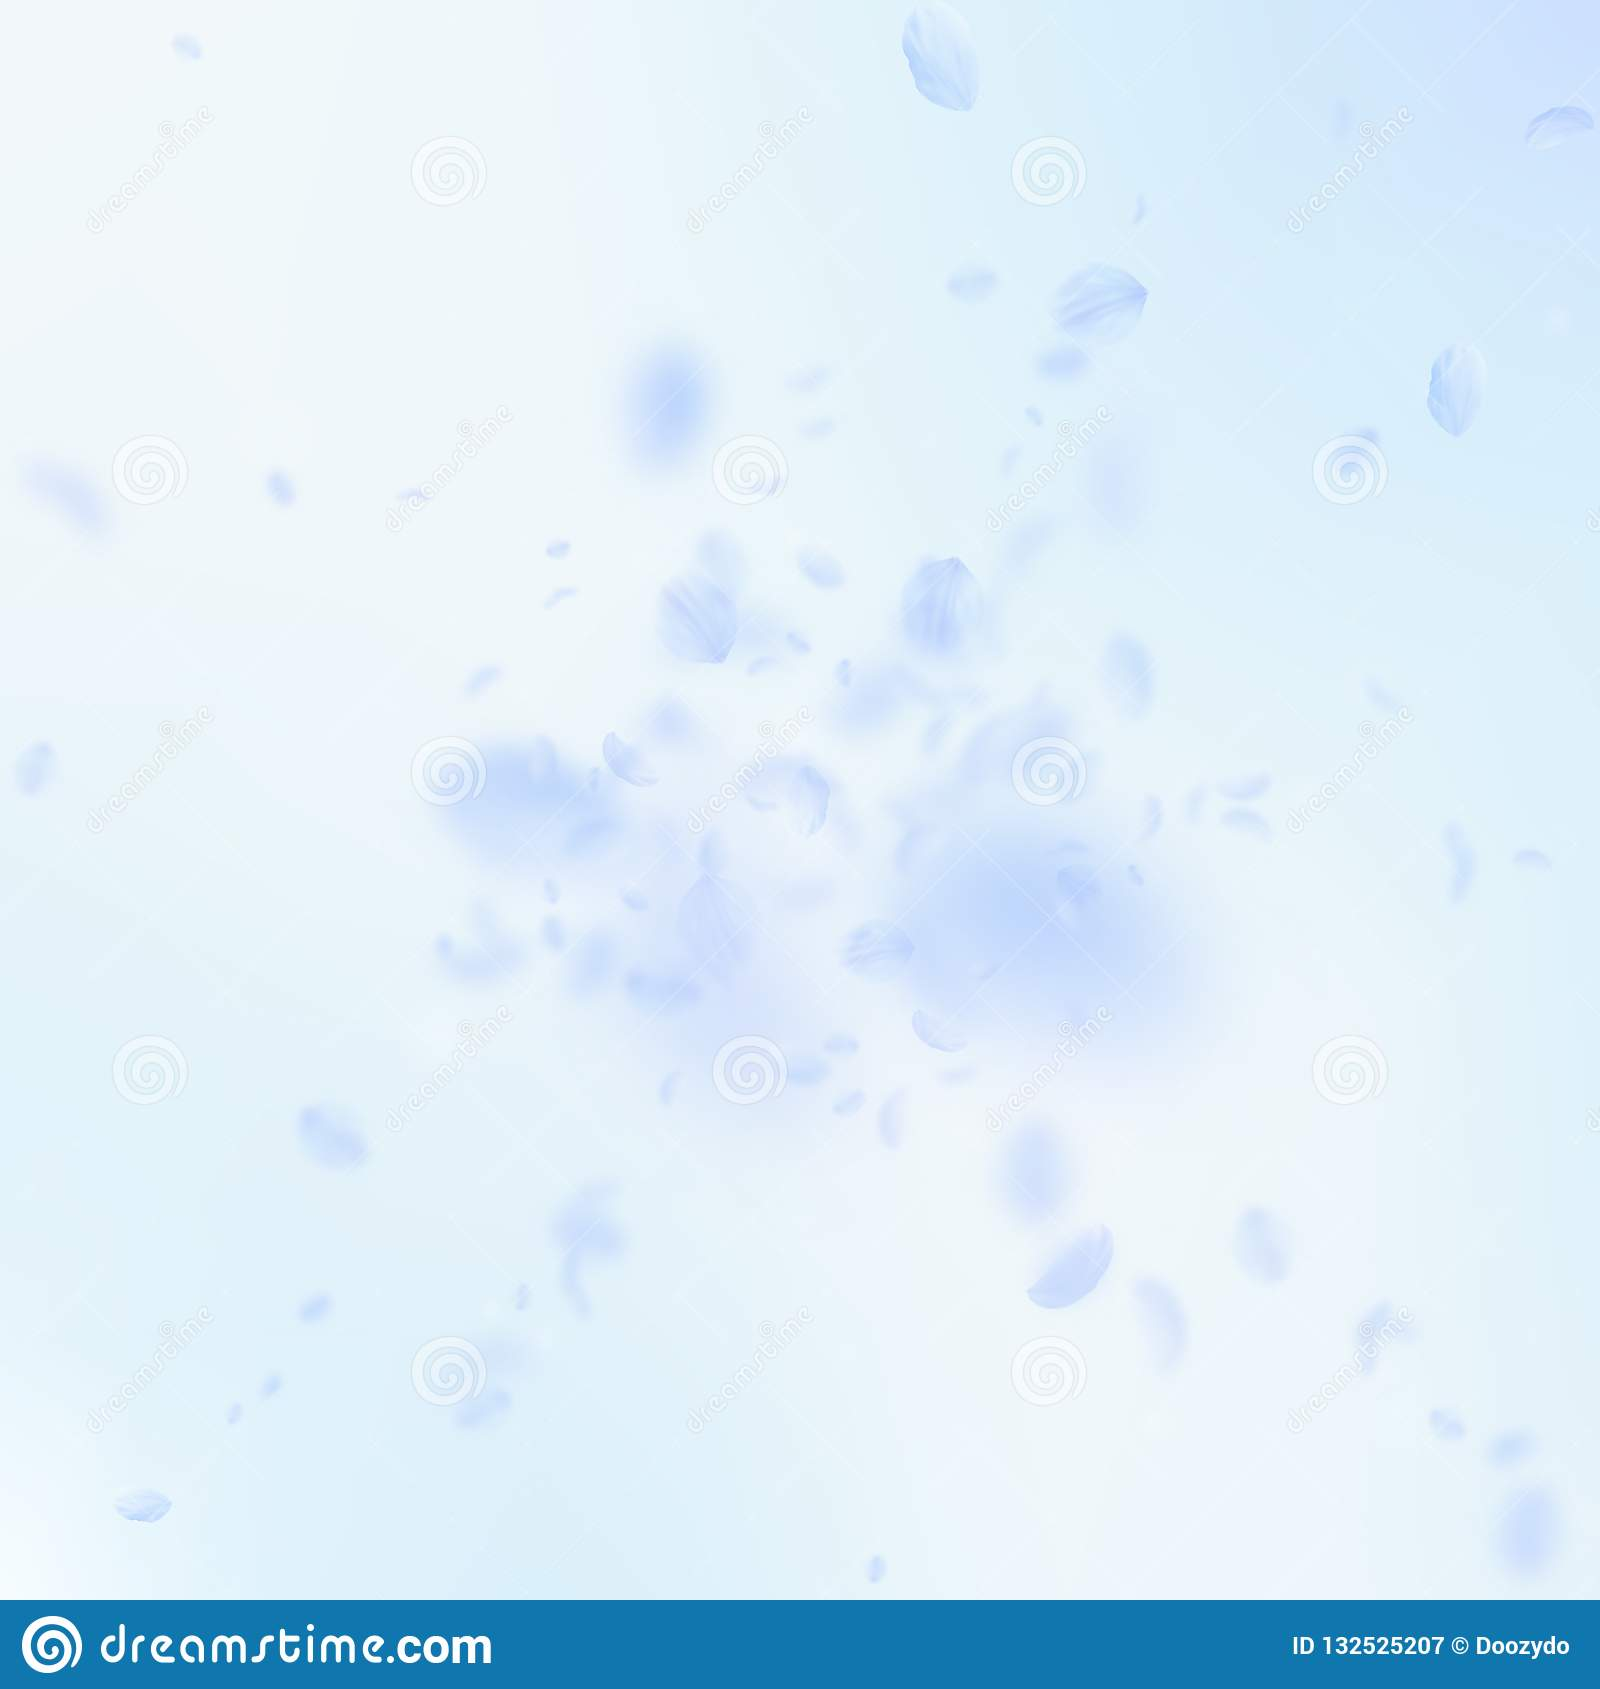 Light Blue Flower Petals Falling Down Noteworthy Stock